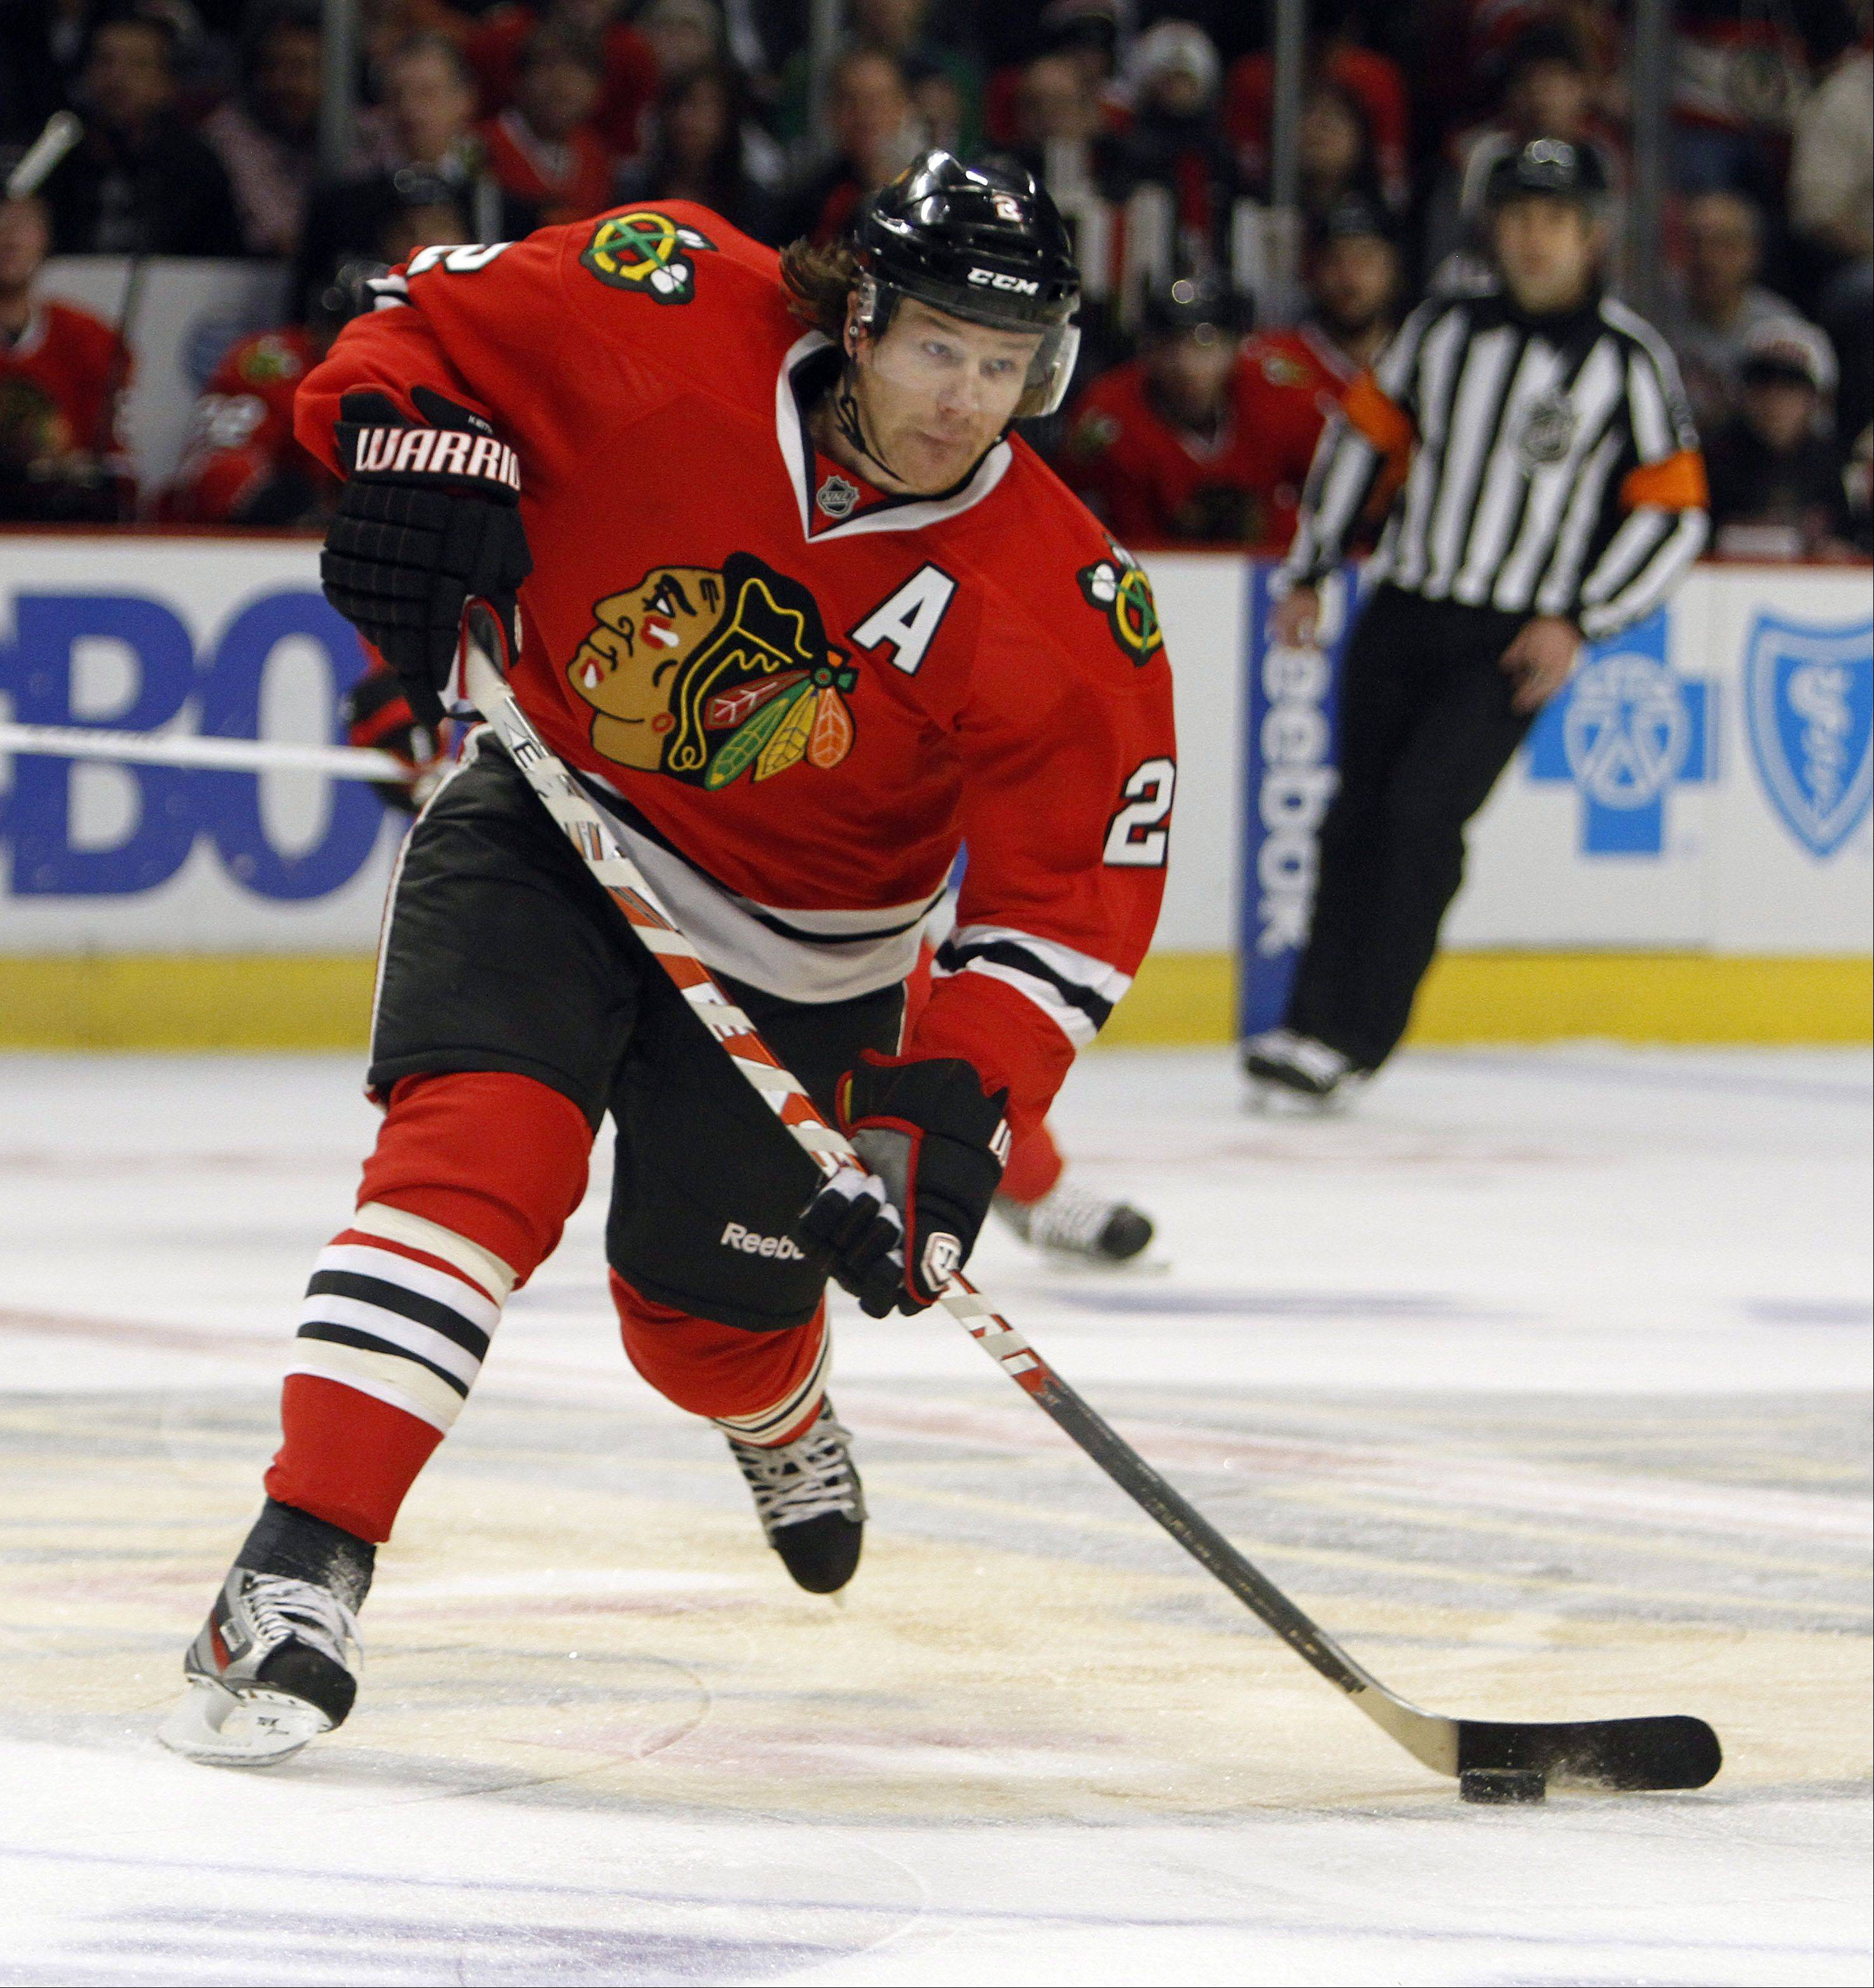 Steve Lundy/slundy@dailyherald.com Blackhawks defenseman Duncan Keith is quietly regaining the form that earned him the Norris Trophy in 2009-10, when he finished with a career-high 69 points and was plus-21, according to Tim Sassone.